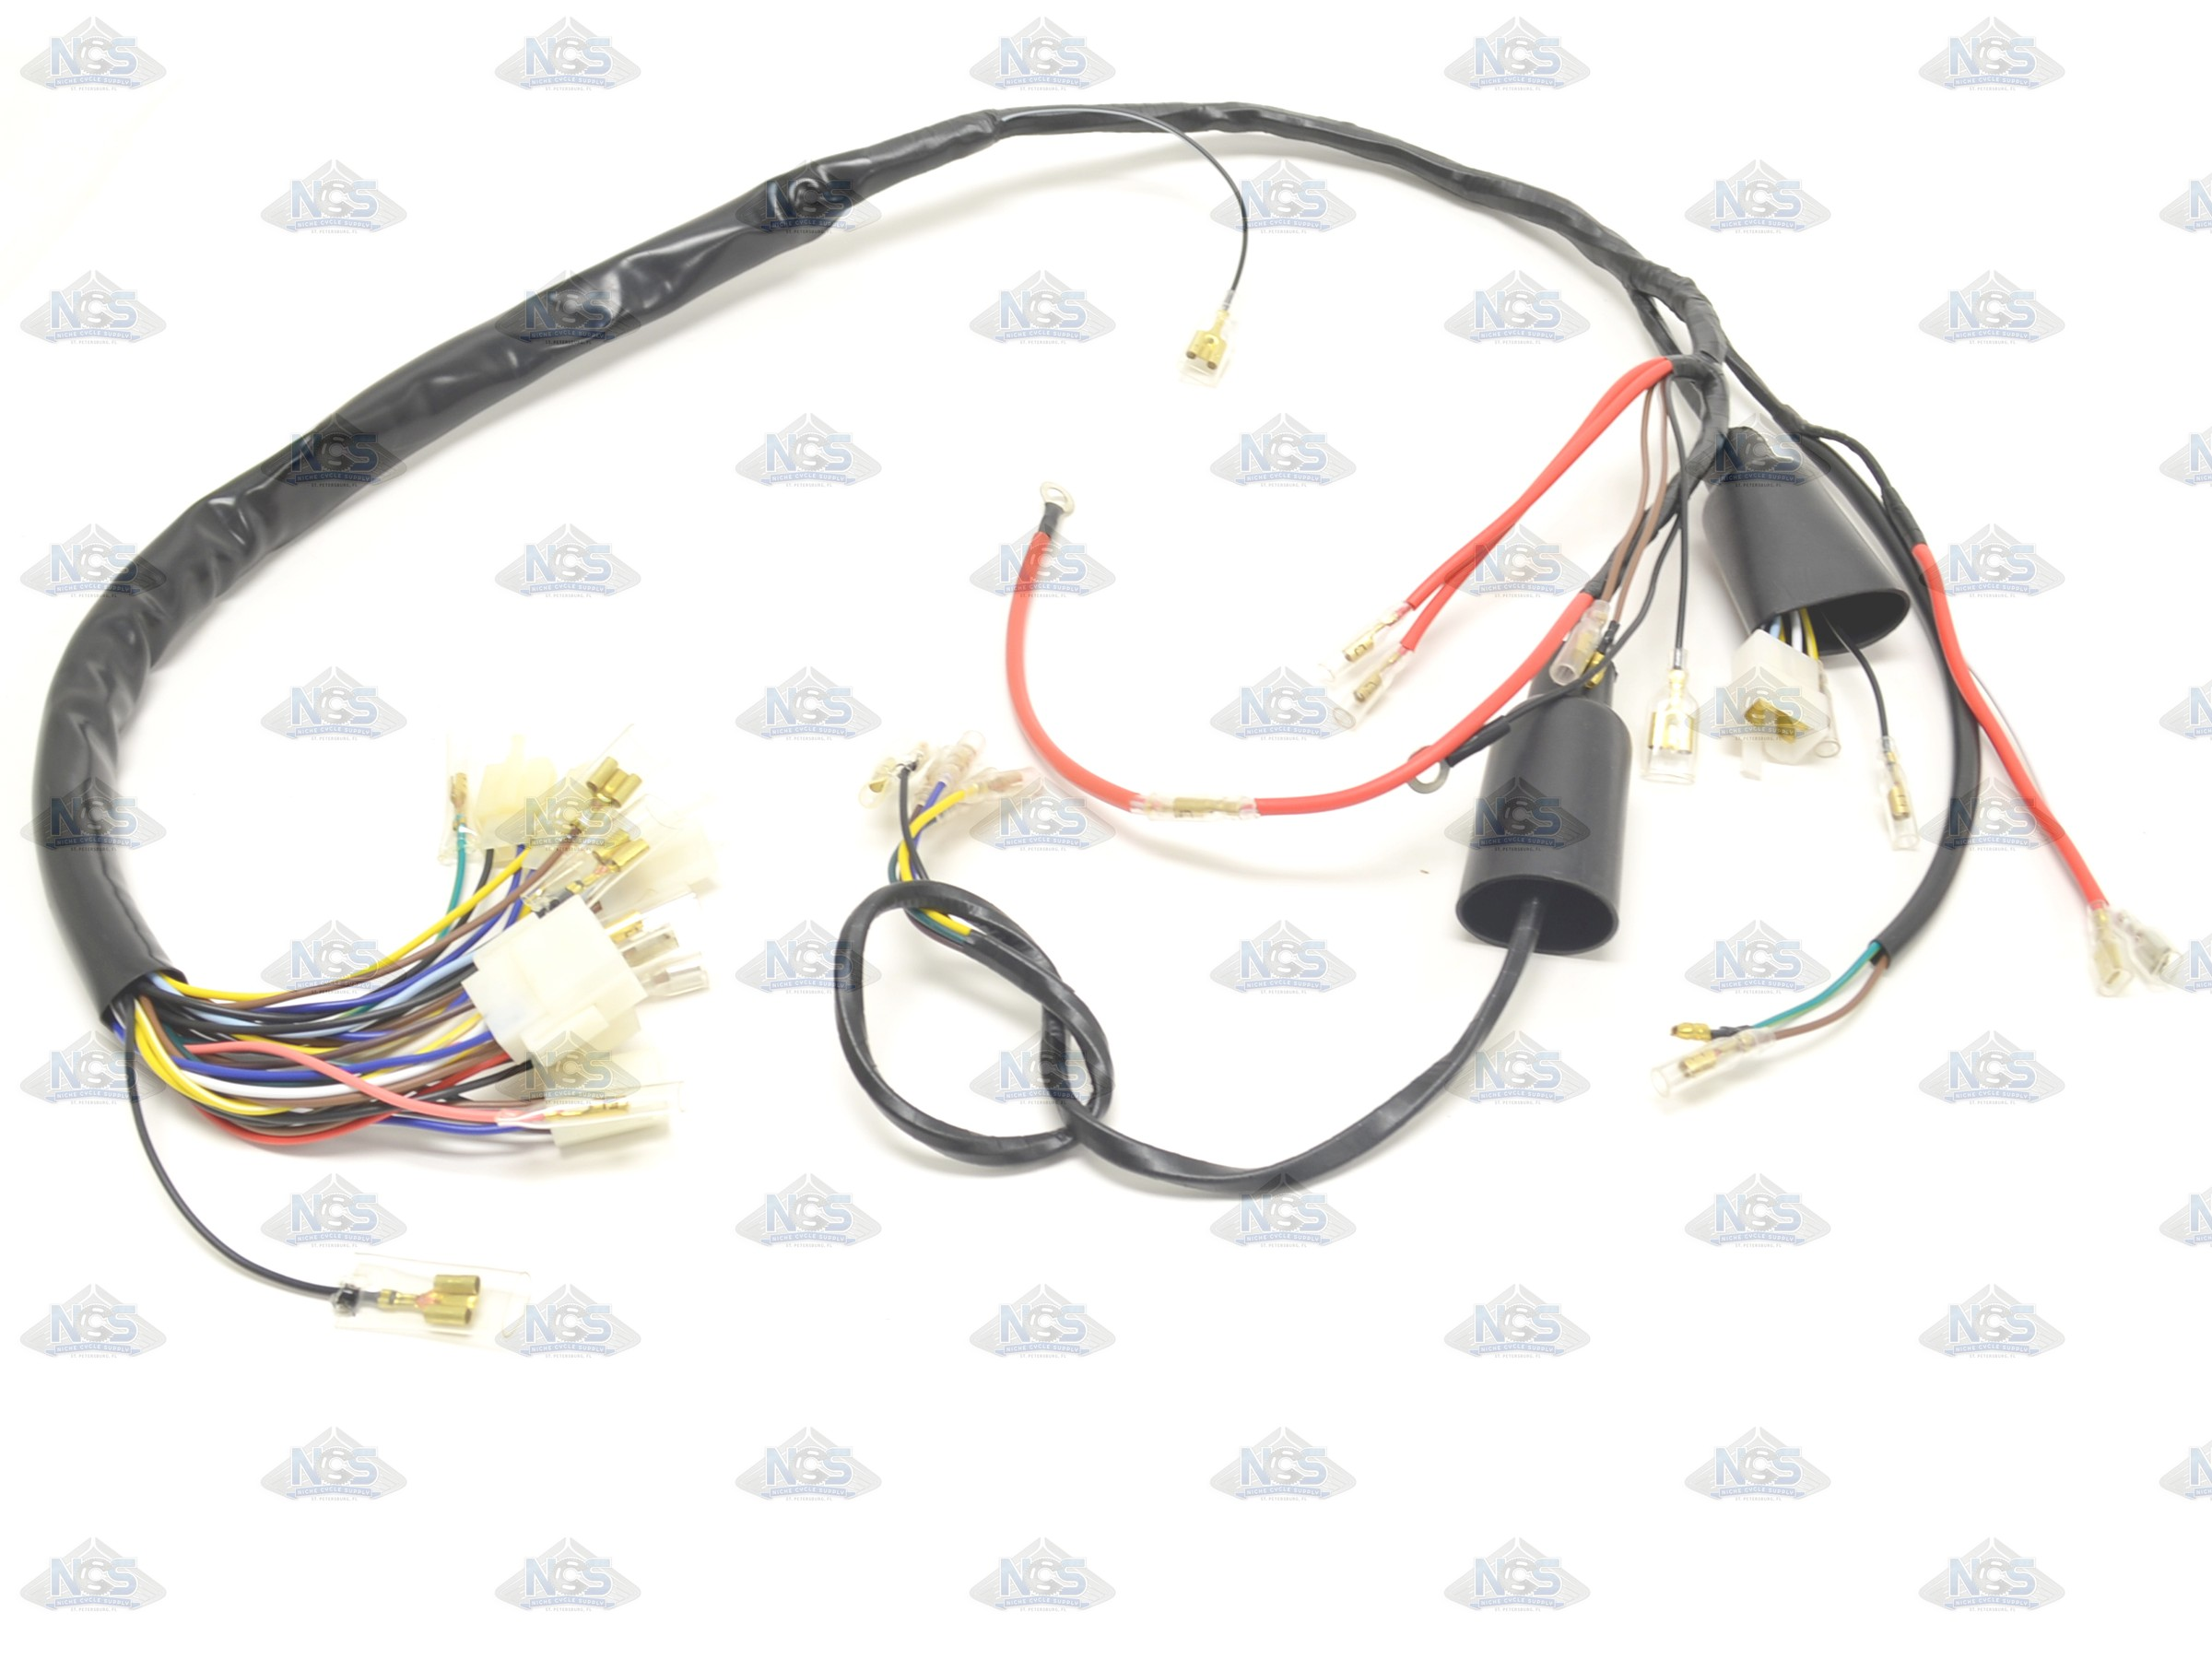 yamaha wiring harness wire colors yamaha xt500 1977 wire harness